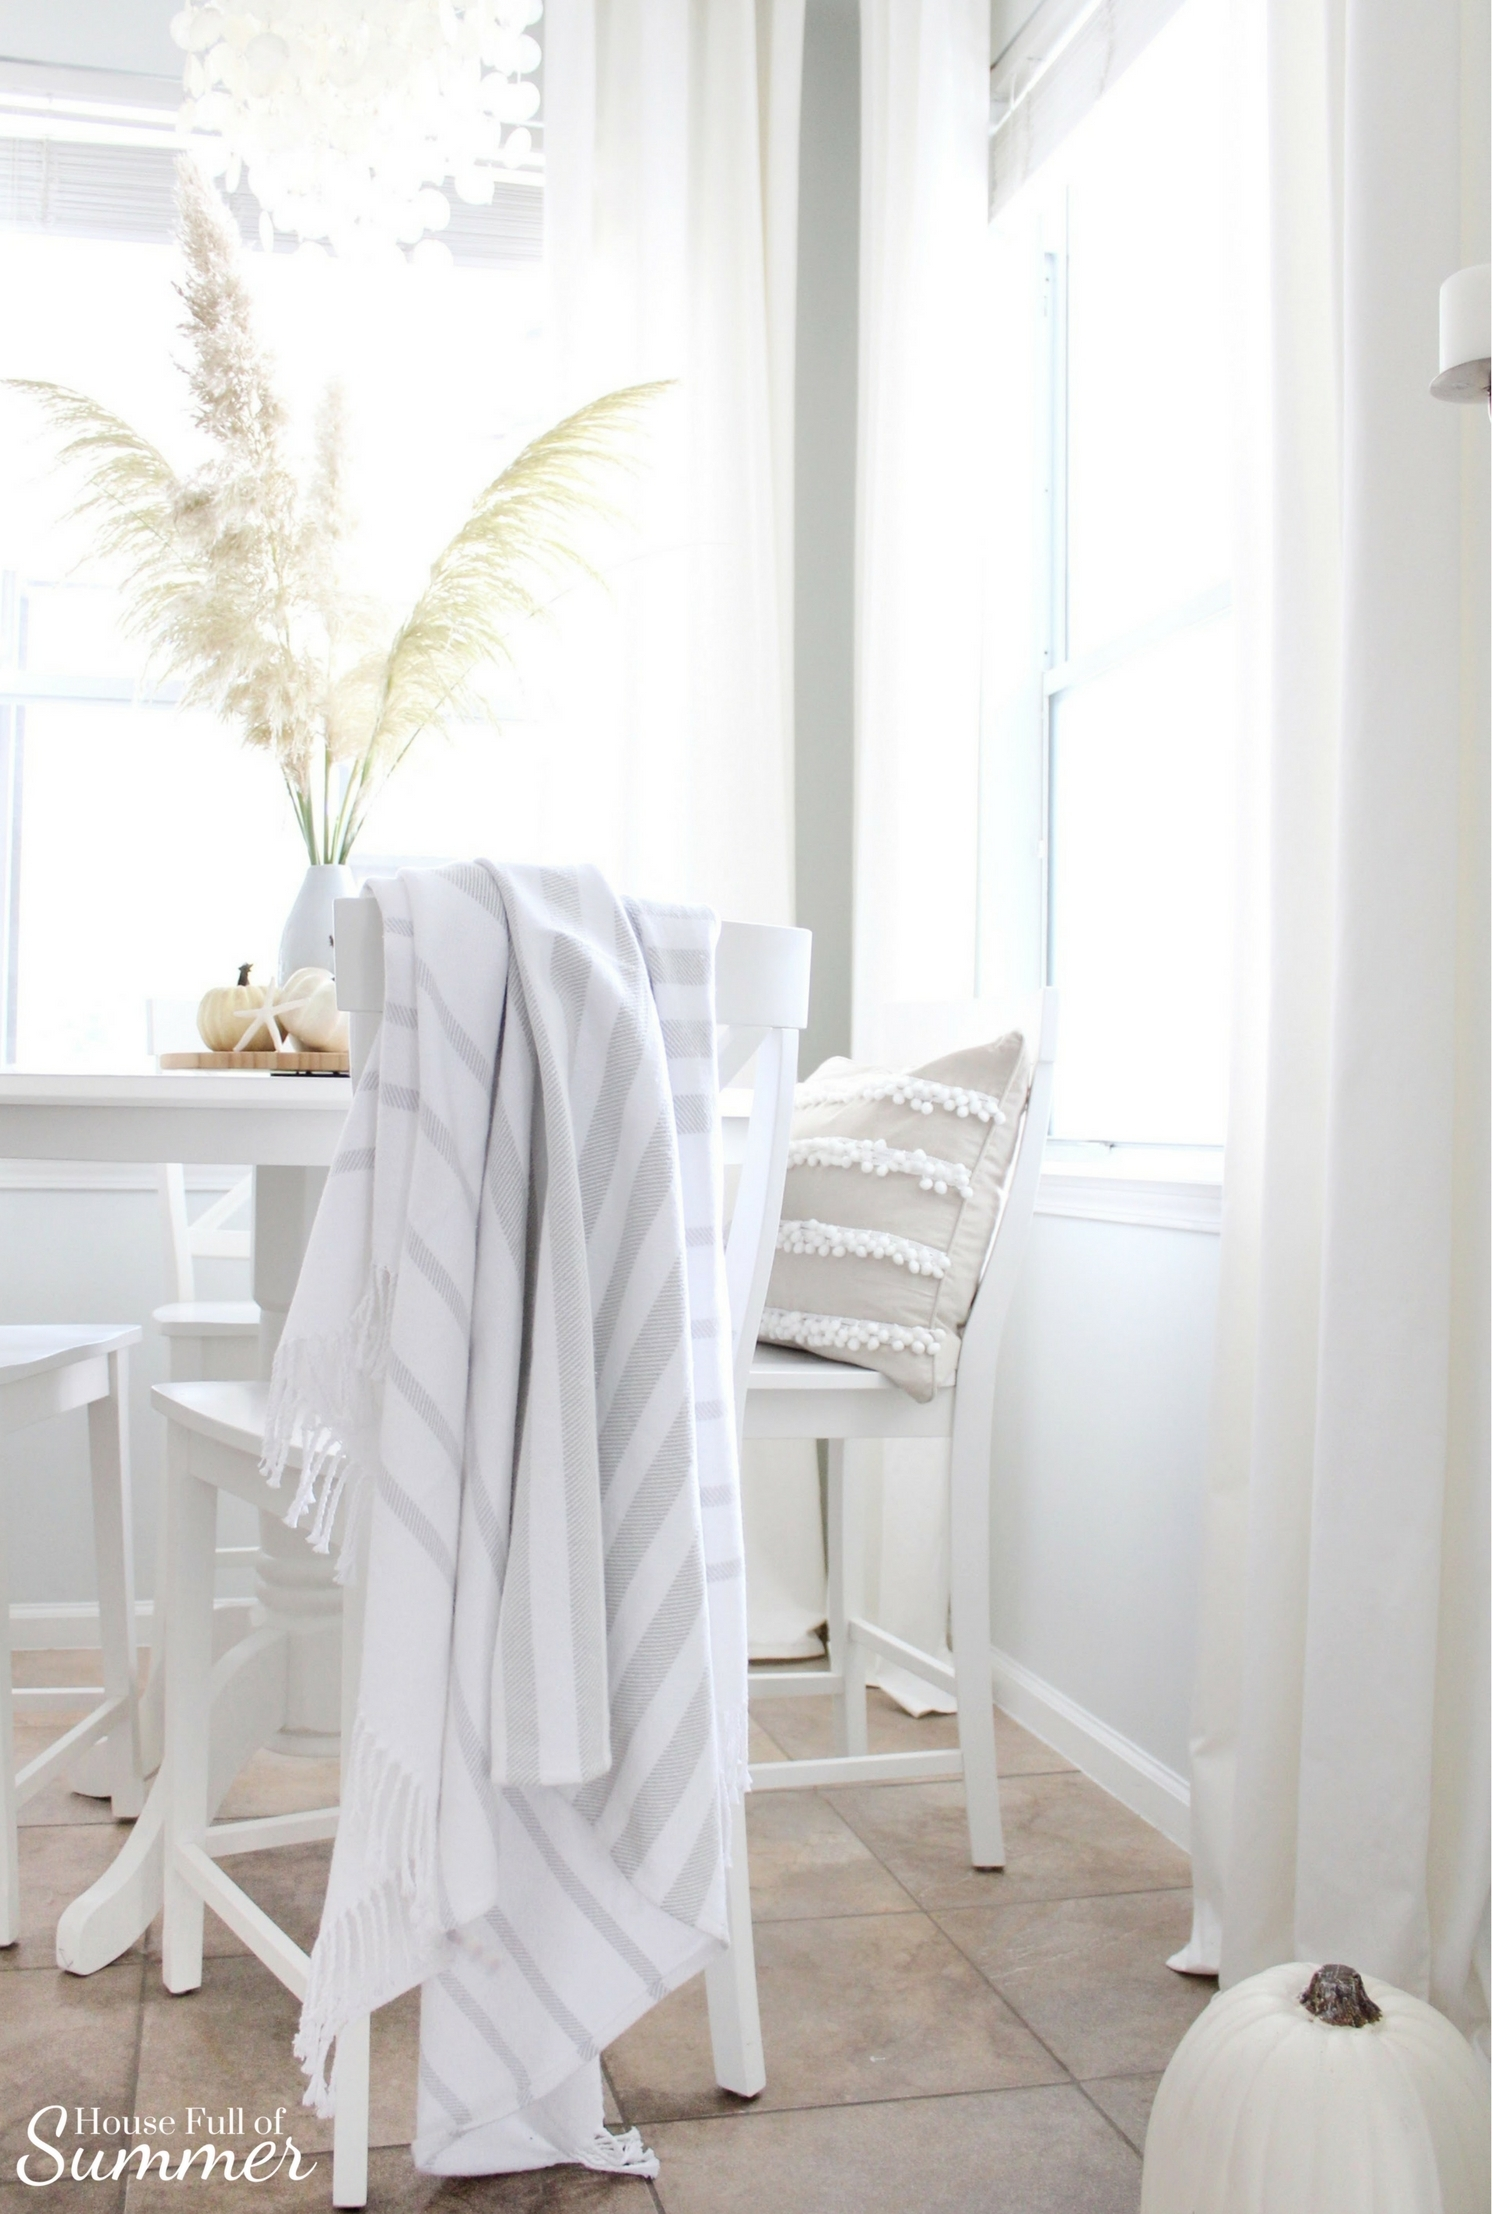 House Full of Summer: Fall Home Tour Blog Hop - Cozy, Coastal, Chic Breakfast nook fall decorating ideas. eat in kitchen, dining table, Neutral interior, white pumpkins, fall centerpiece, round counterheight table